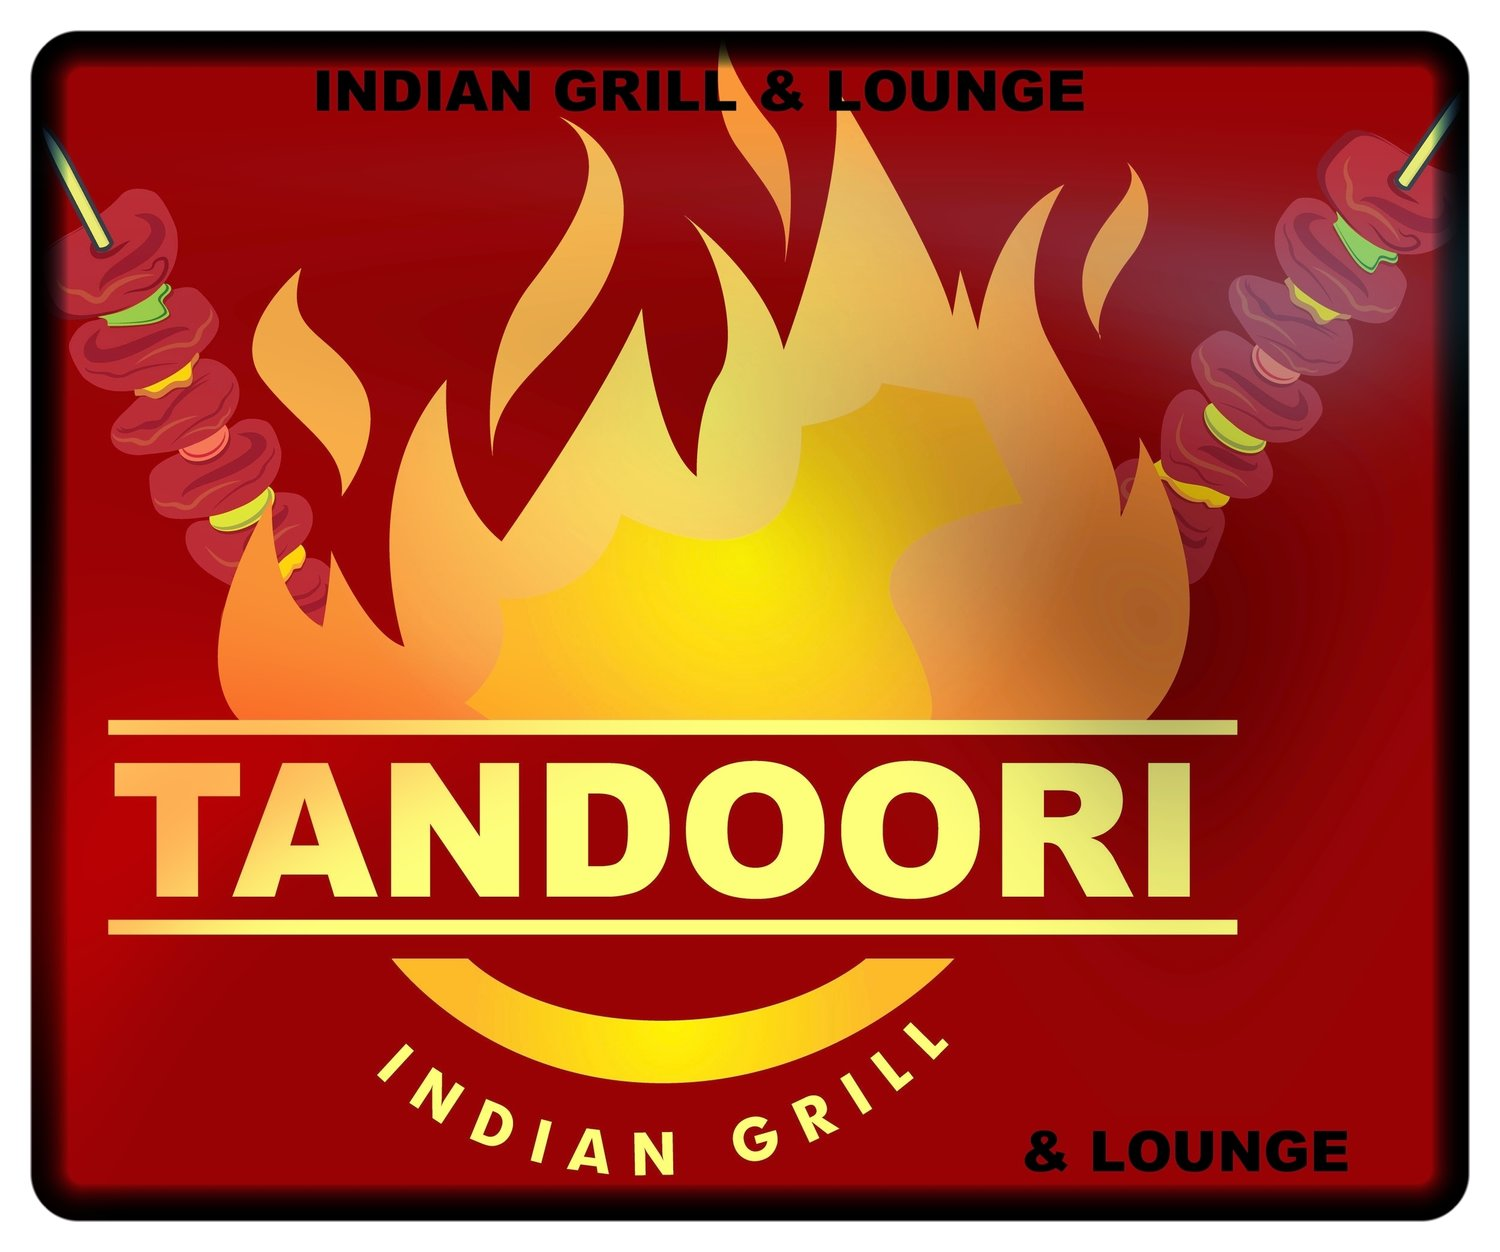 Tandoori Indian Grill & Lounge